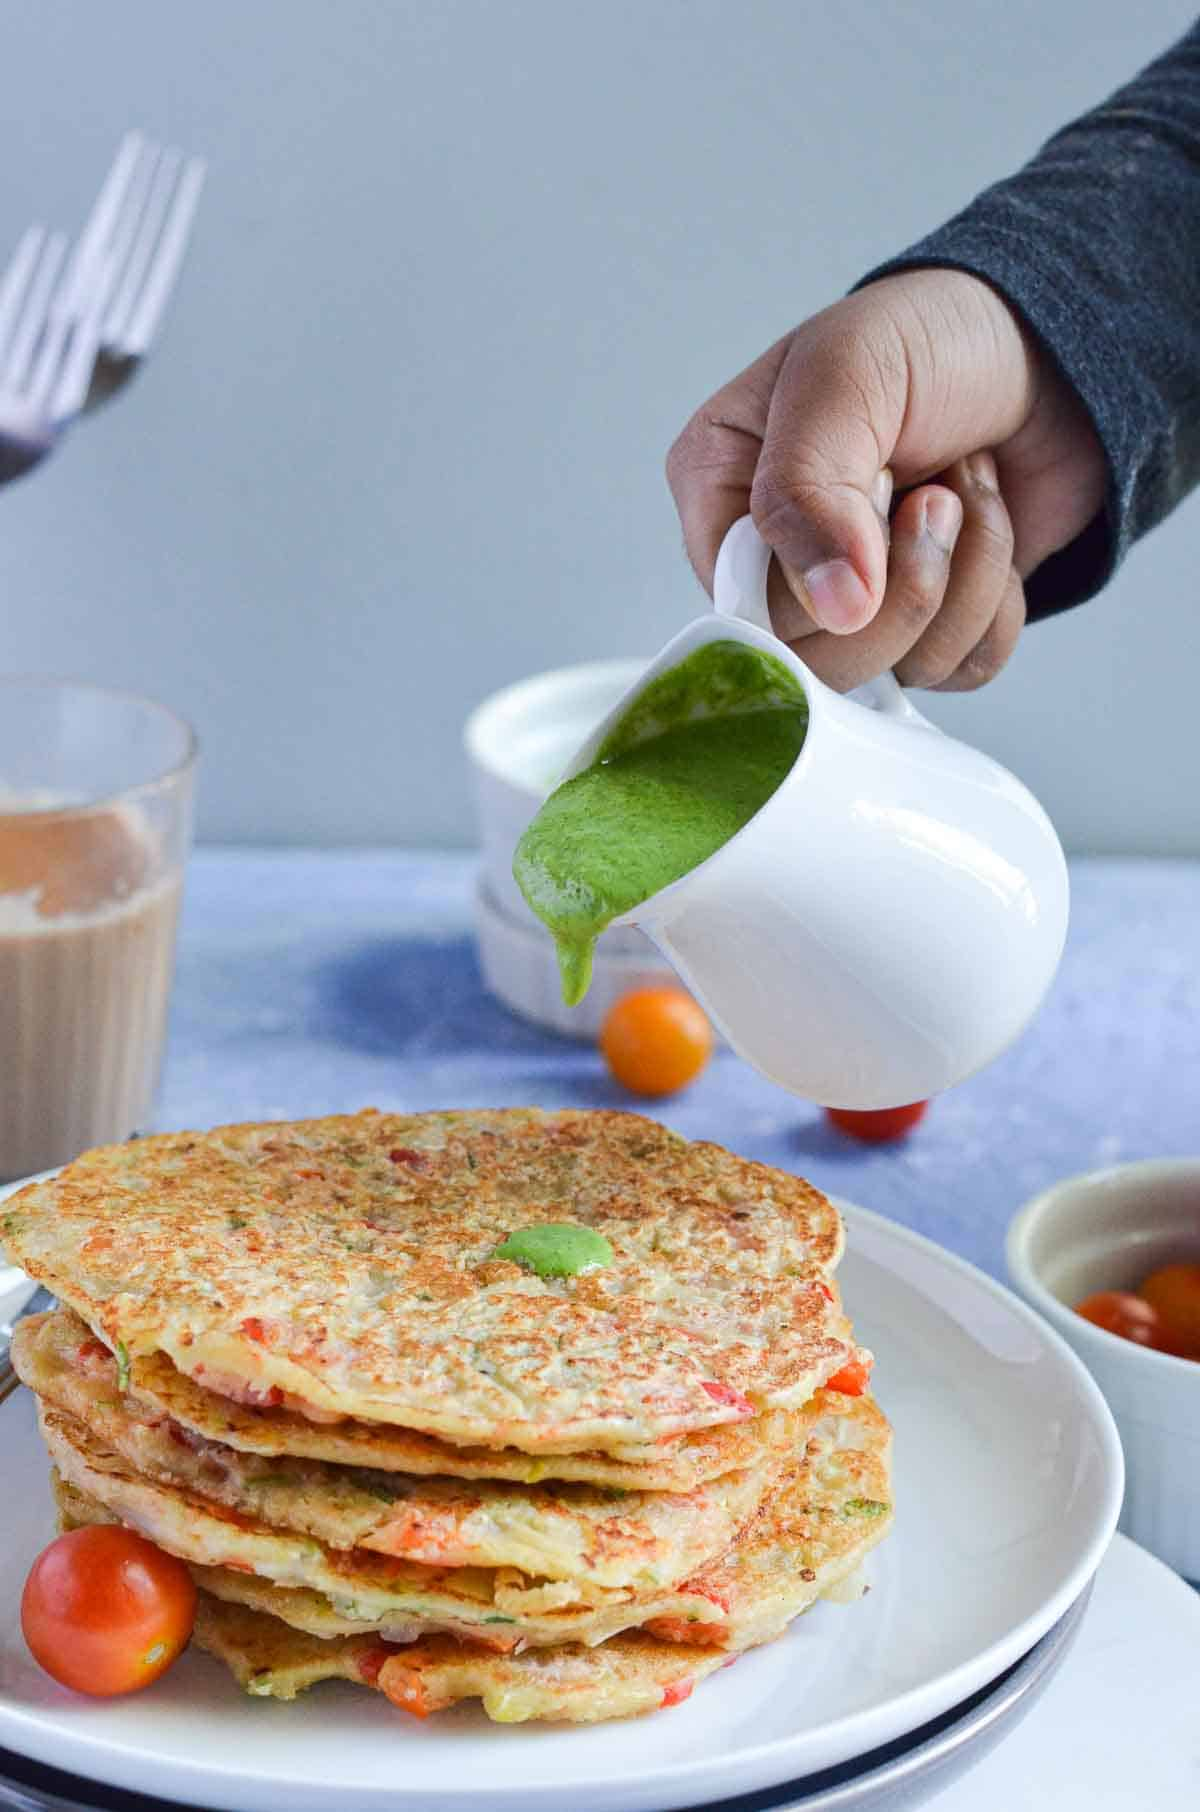 green chutney poured over a stack of savory pancakes